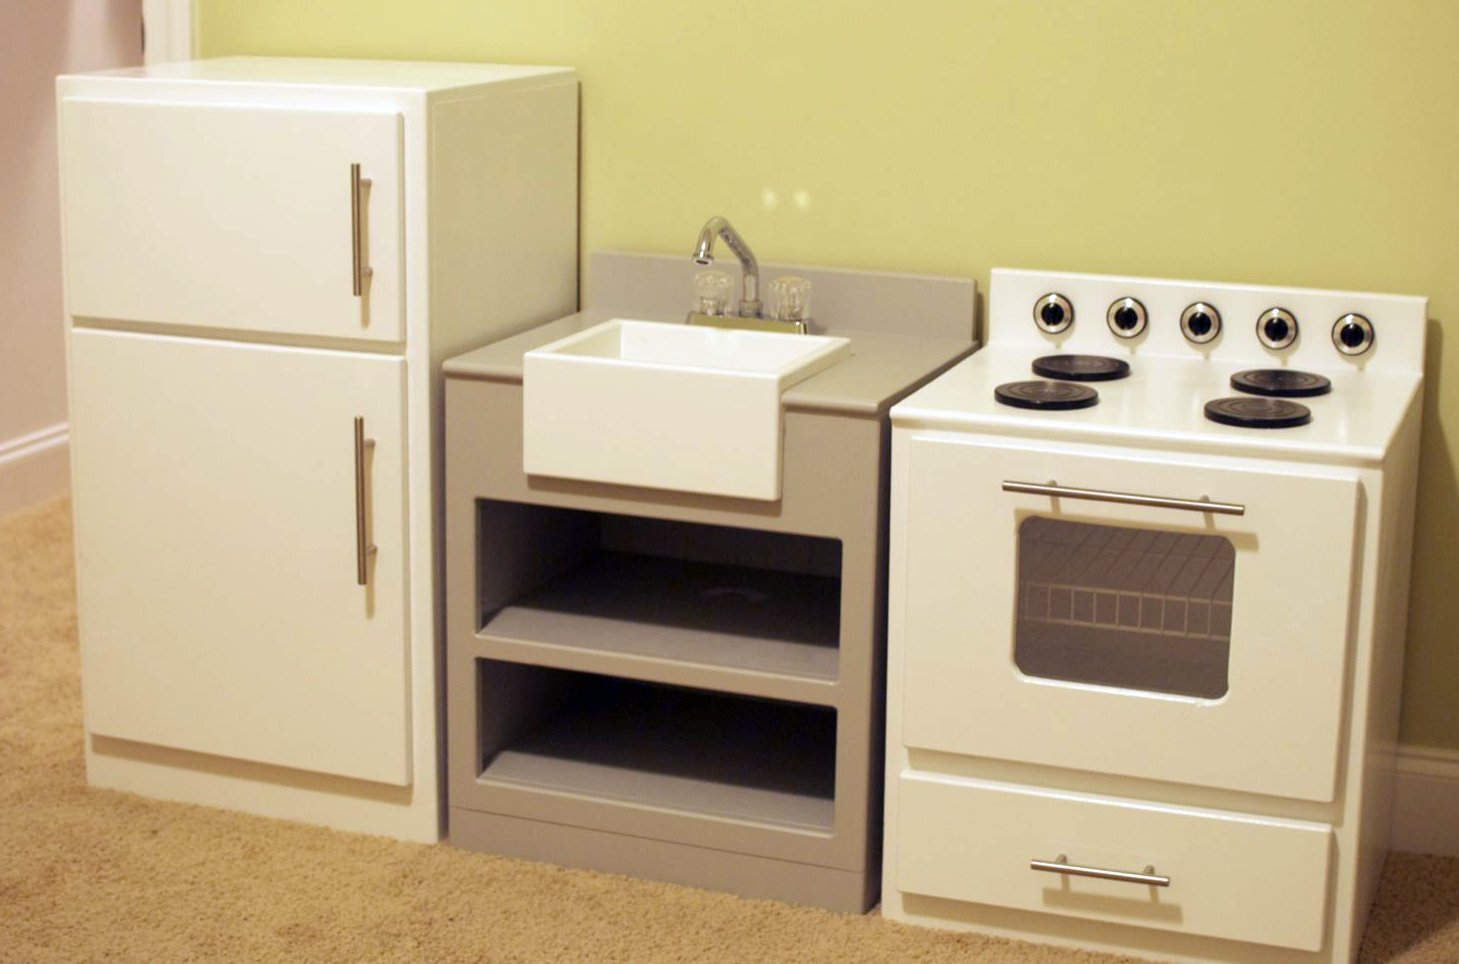 Best Woodworking Plans Free: Lowes Play Kitchen Plans ...